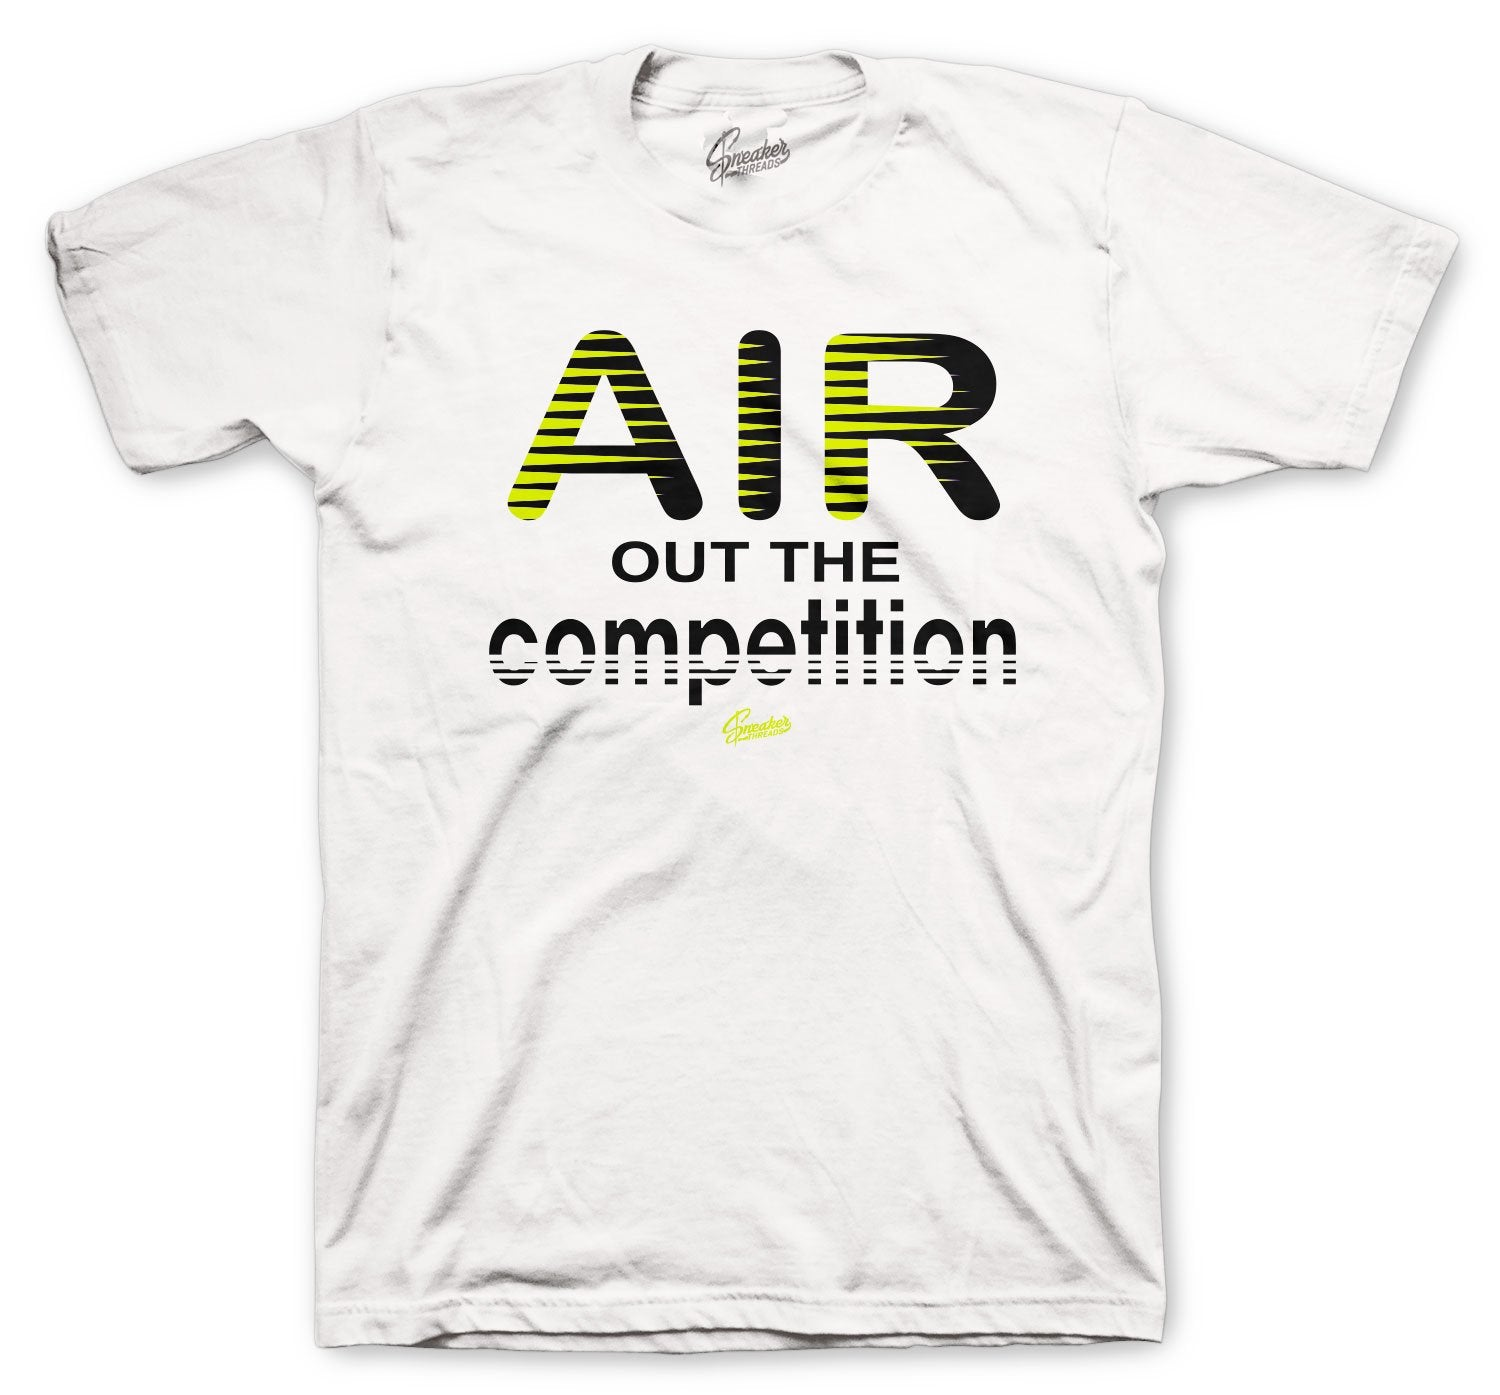 t shirt collection matching the sneaker air max 90 volt collection